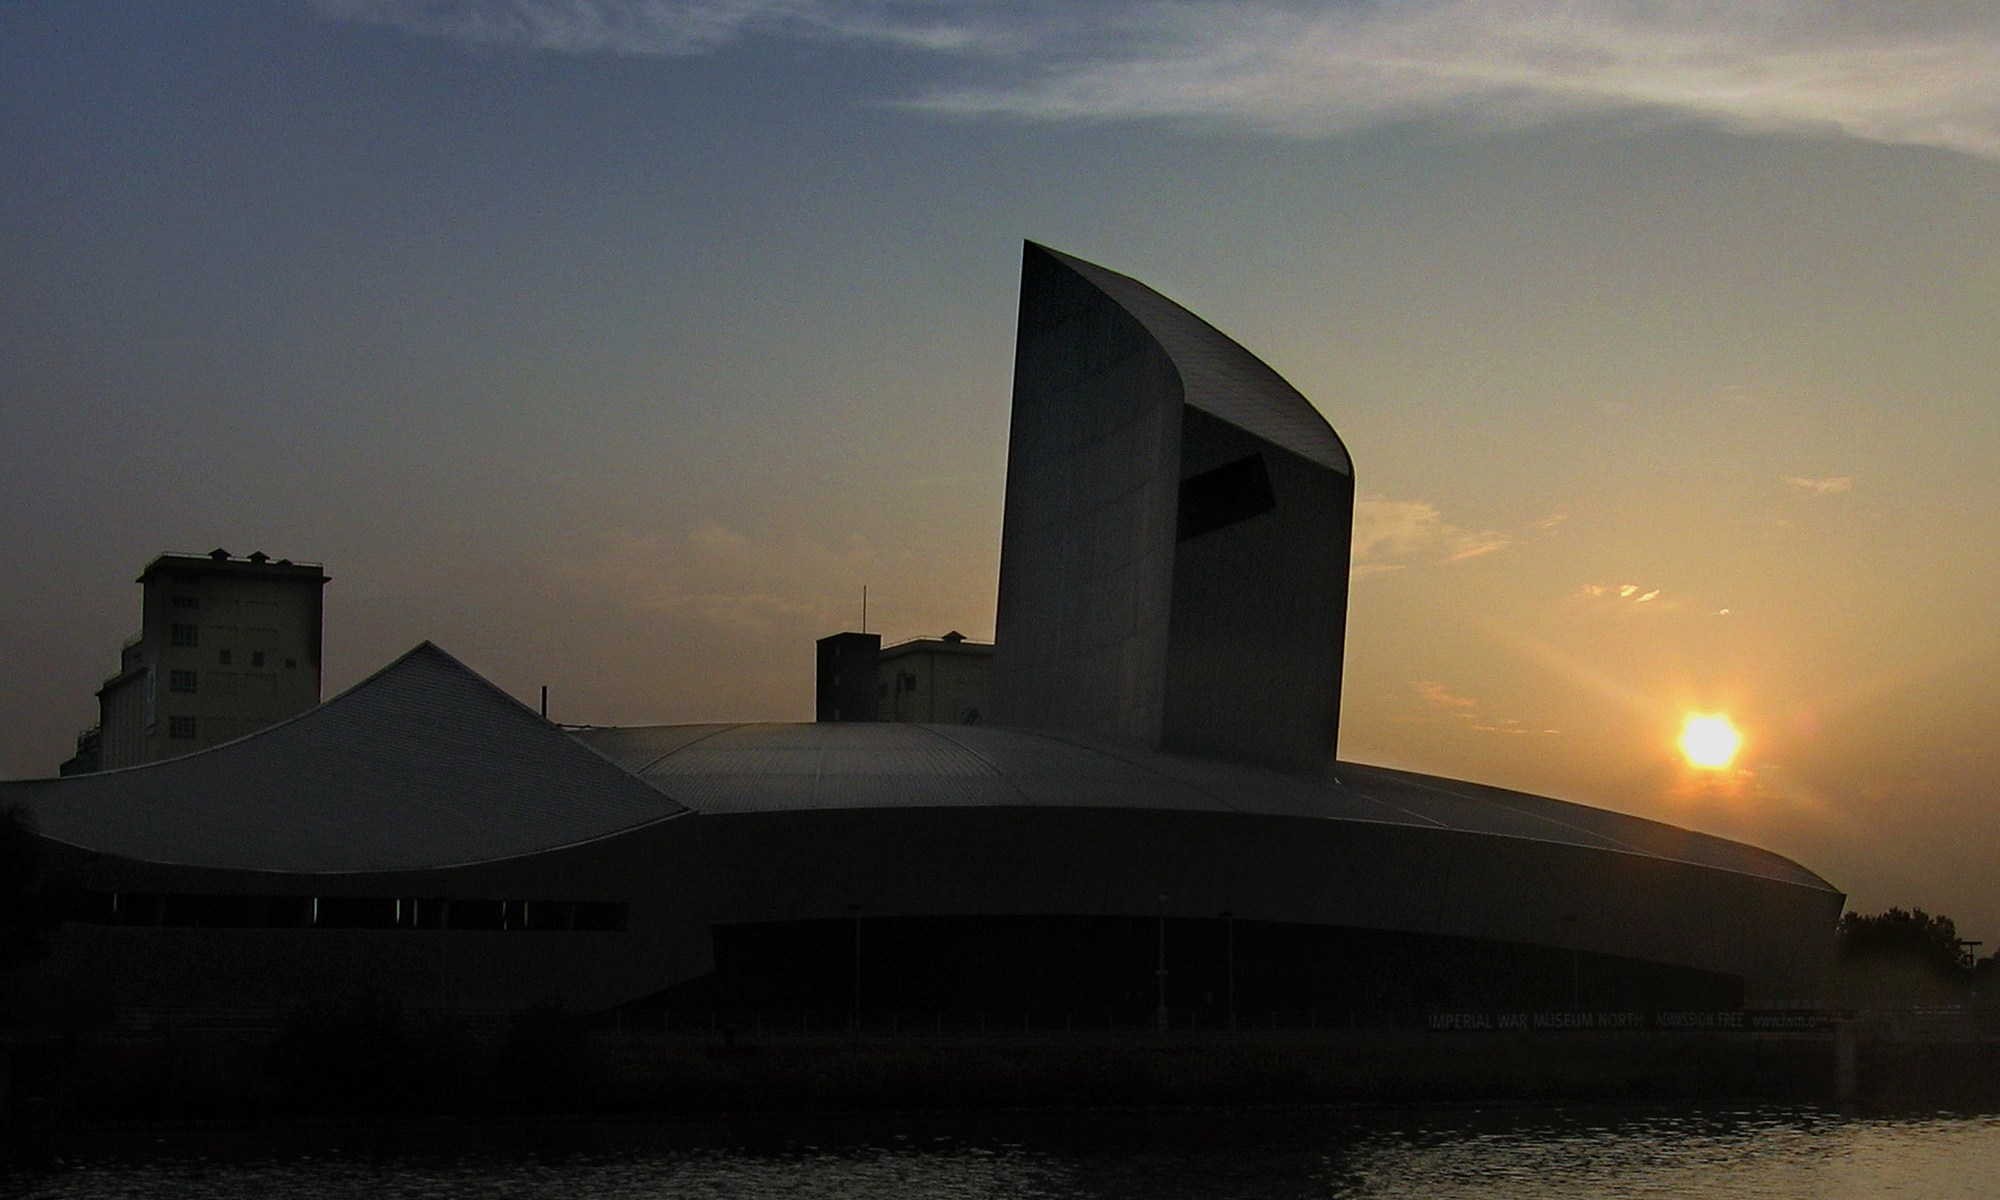 Sunset over Imperial War Museum at Salford Quays